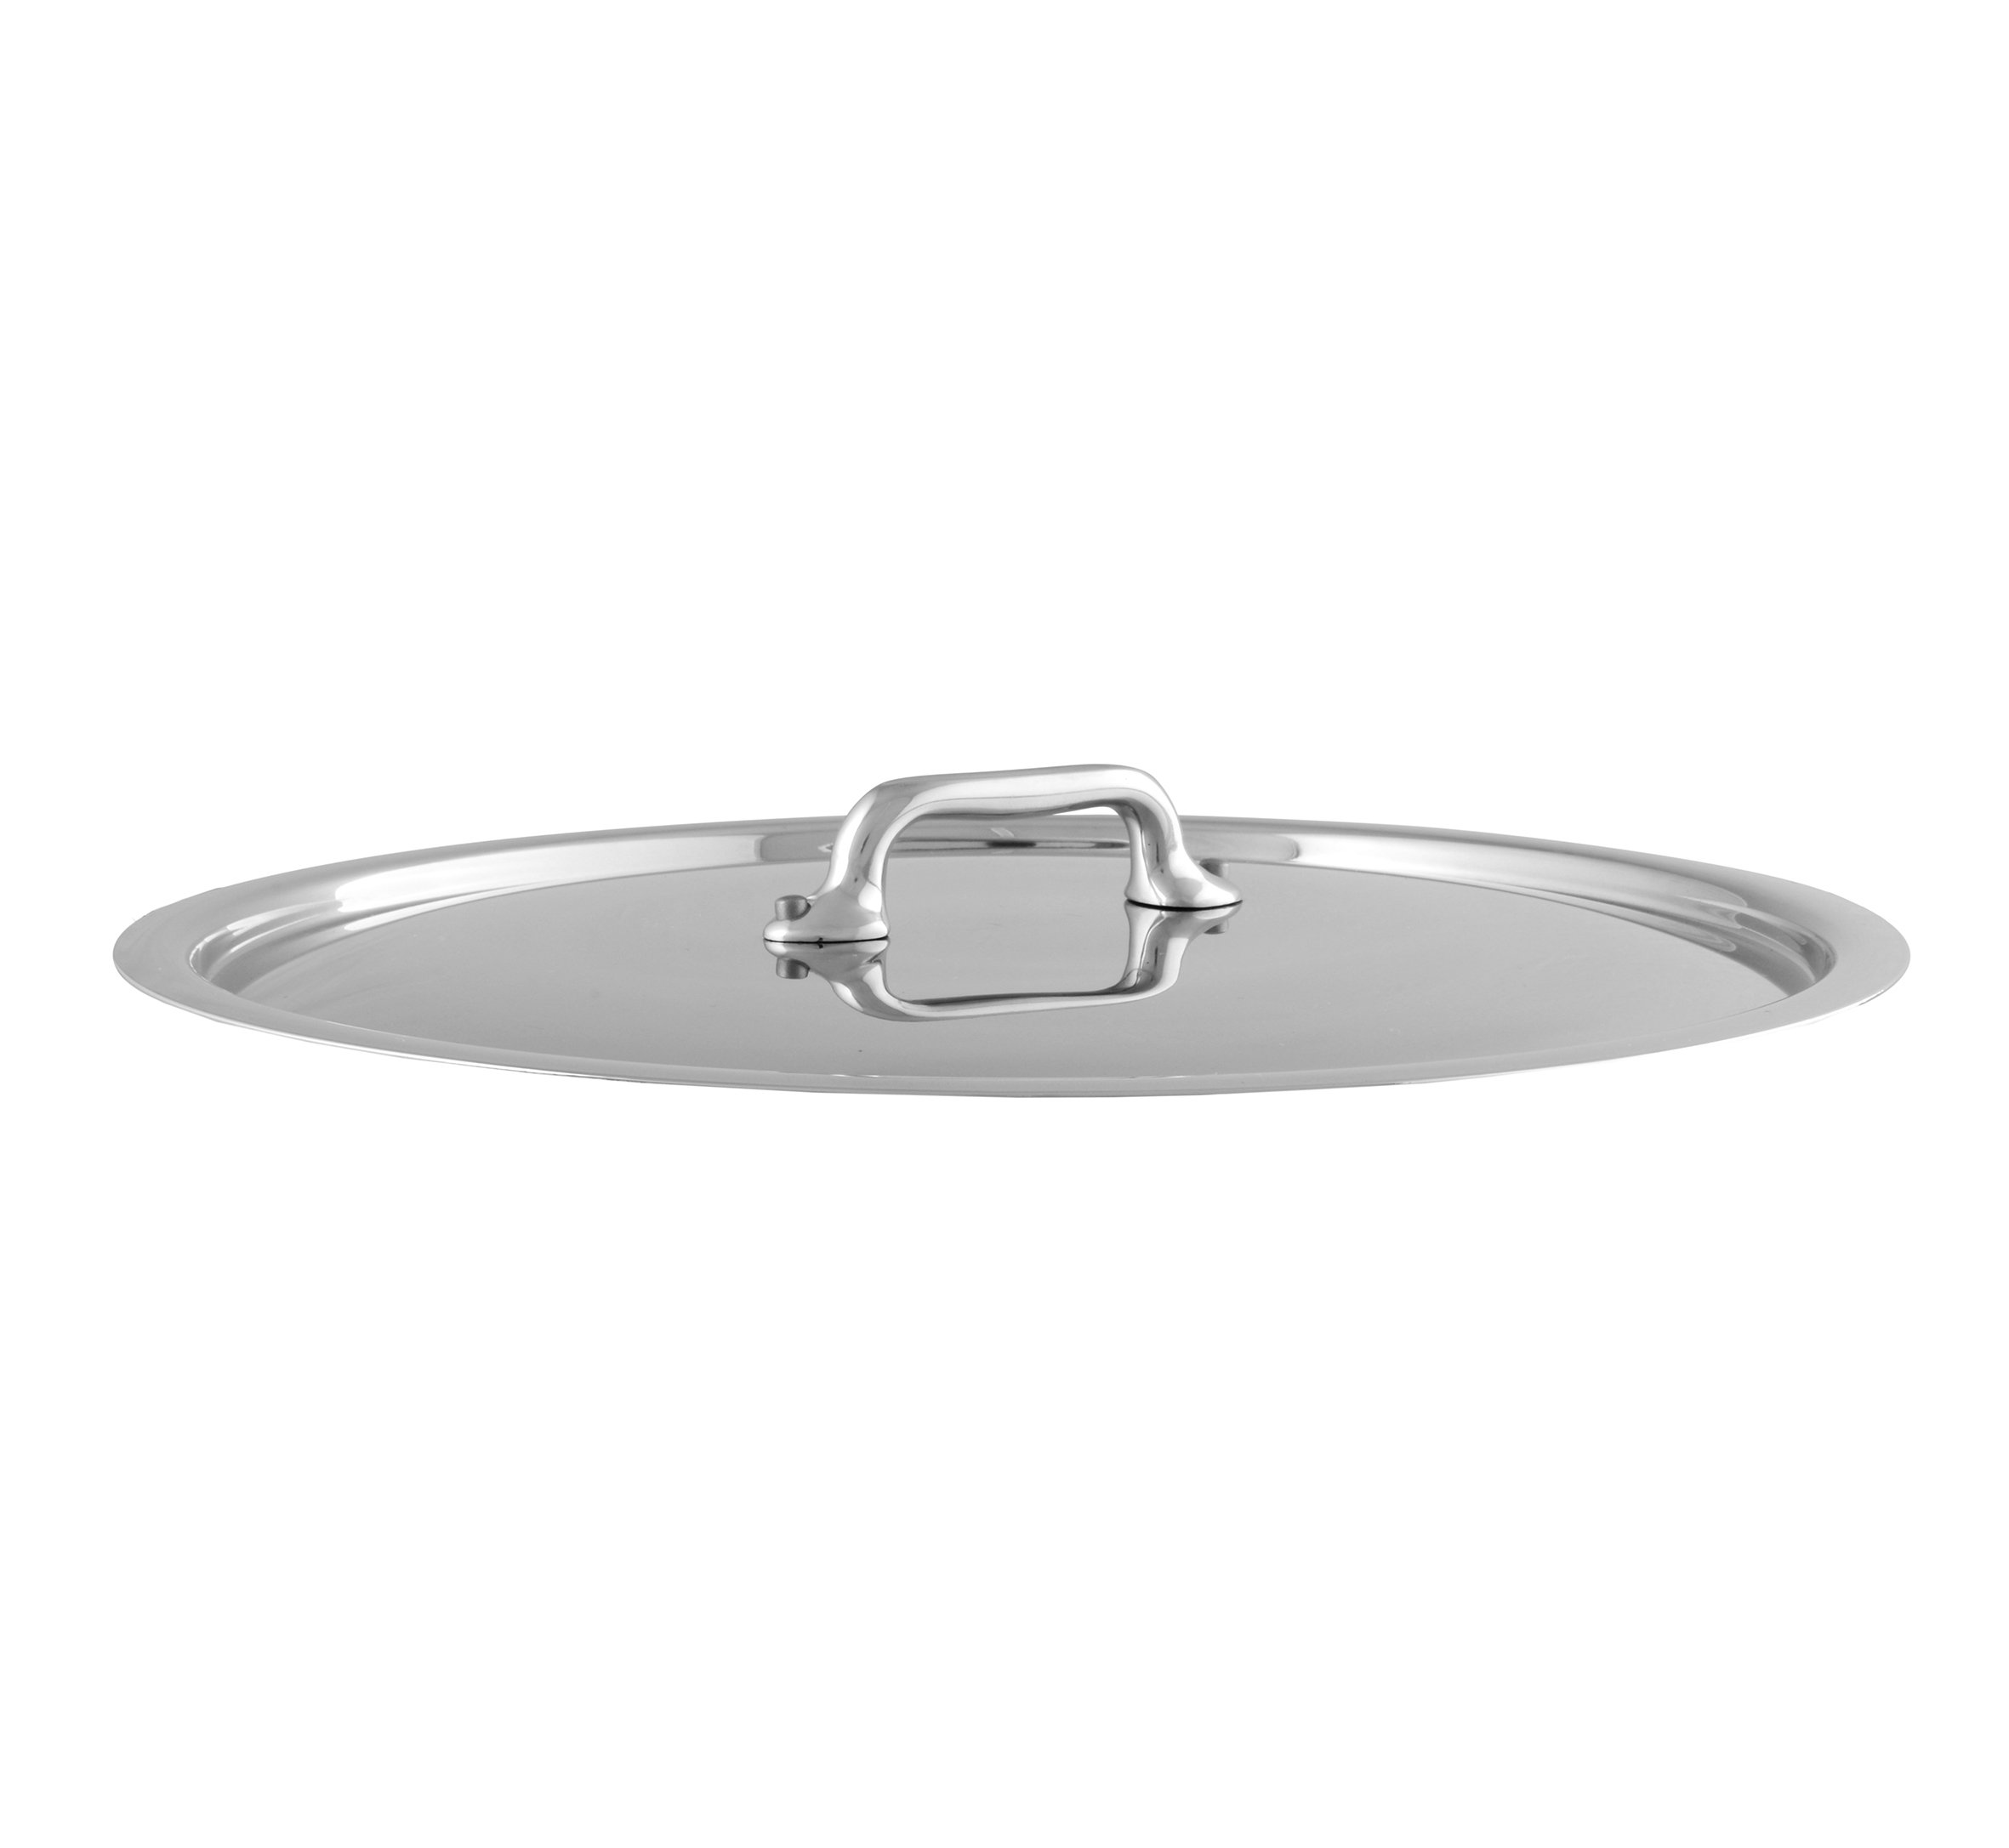 Mauviel Made In France M'Cook 5 Ply Stainless Steel 5218.28 11 Inch Lid, Cast Stainless Steel Handle by Mauviel (Image #1)